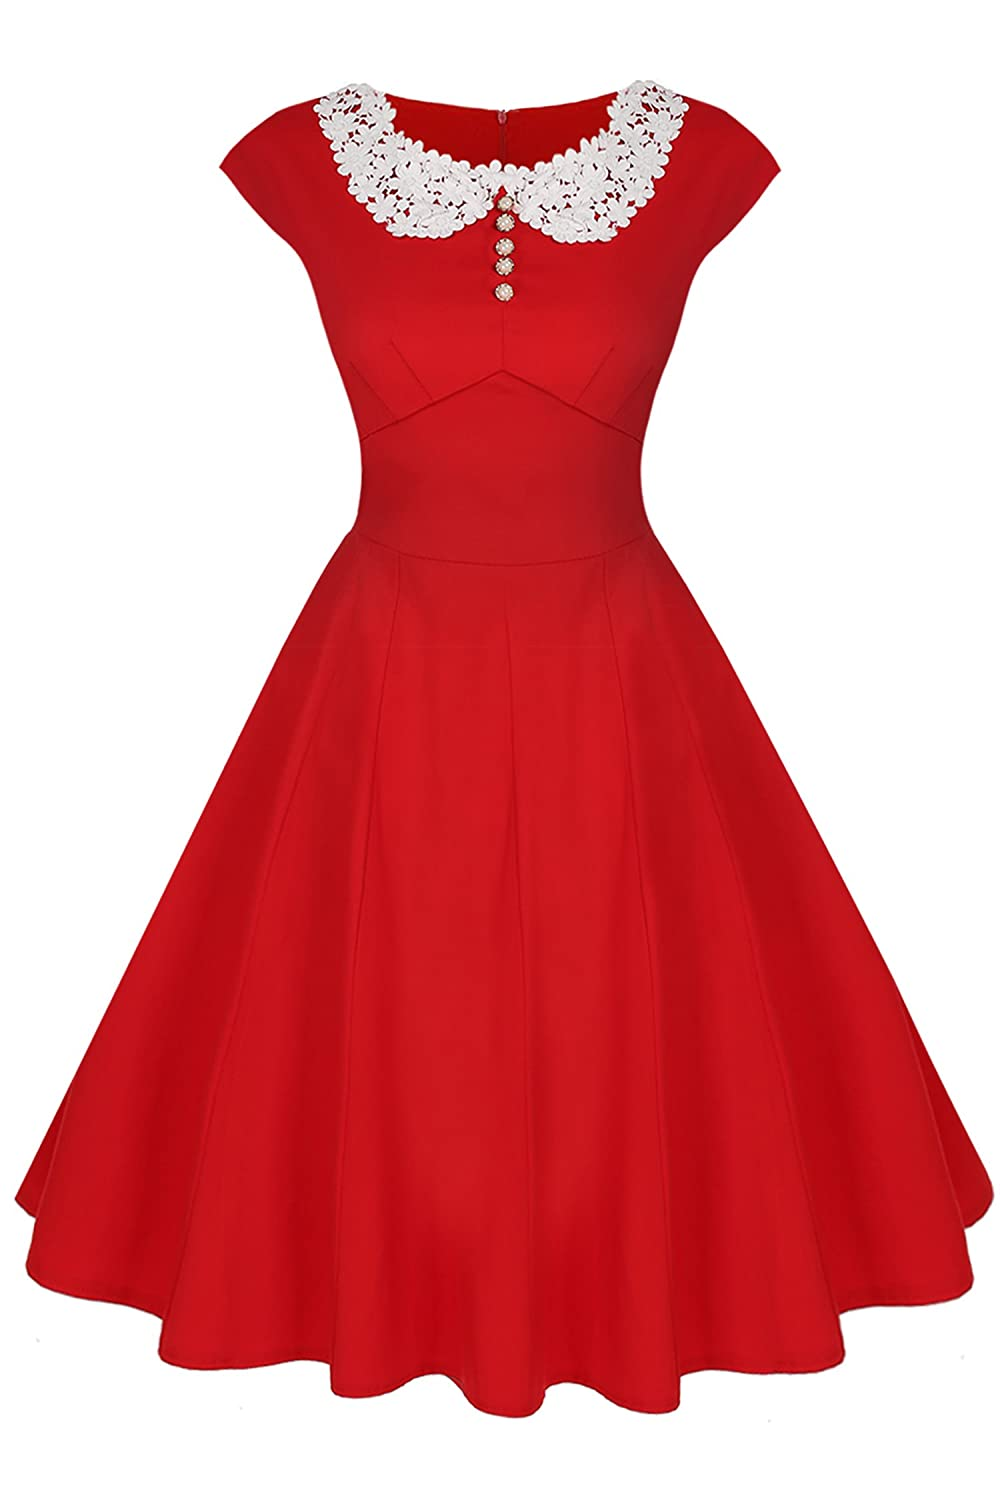 1940s Costumes- WW2, Nurse, Pinup, Rosie the Riveter ACEVOG Womens Classy Vintage Audrey Hepburn Style 1940s Rockabilly Evening Dress $19.99 AT vintagedancer.com